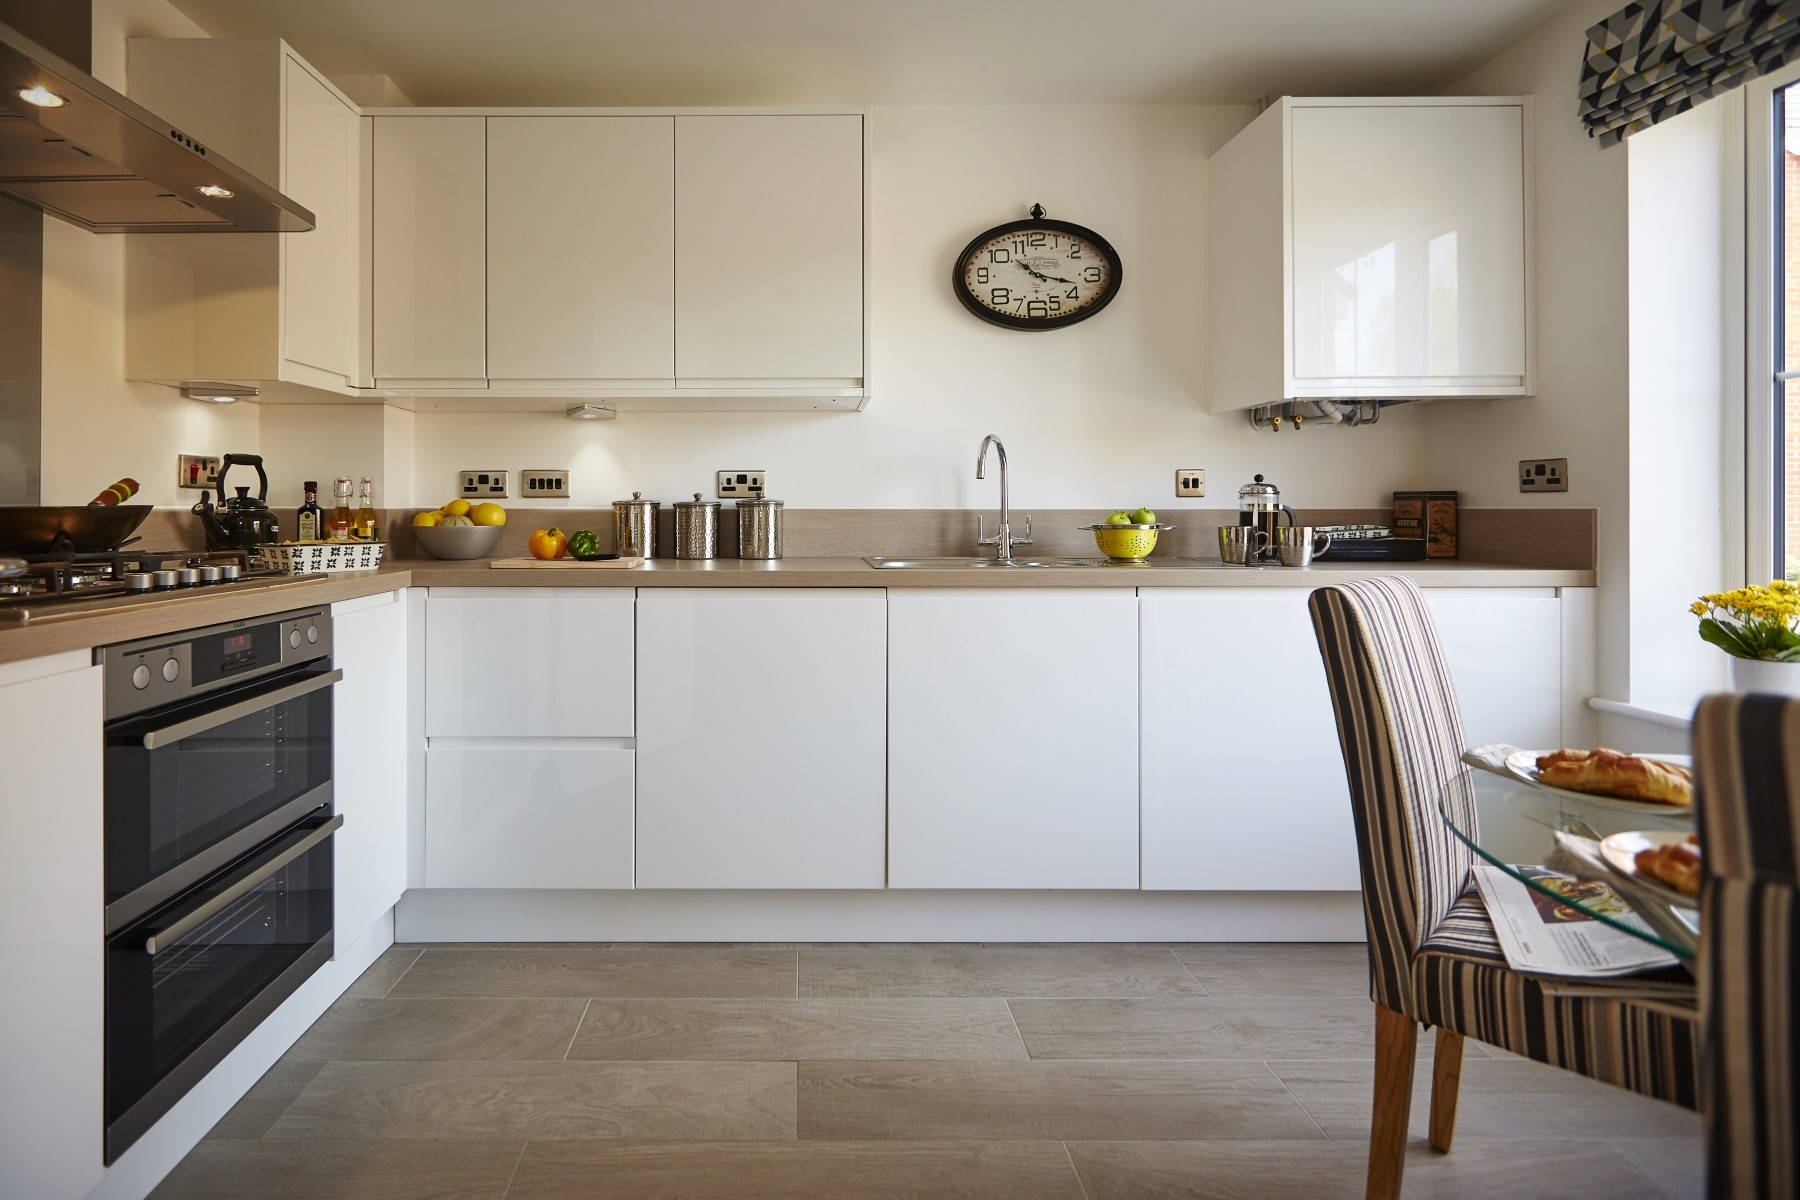 TW Exeter - Cranbrook - Crofton example kitchen 2